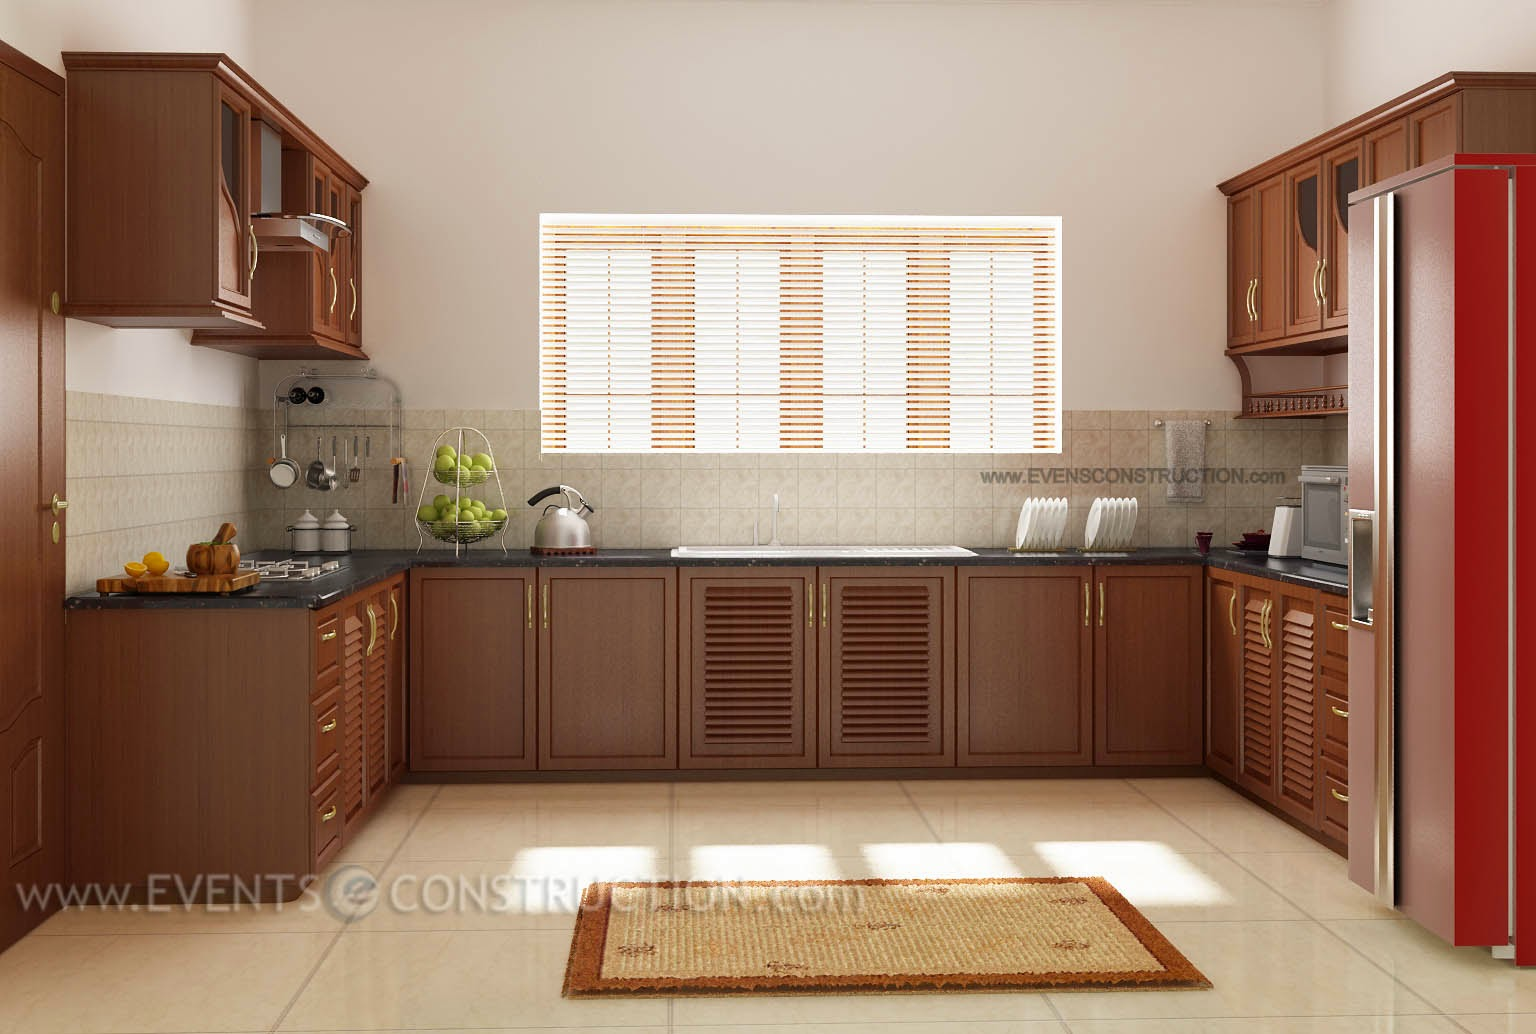 kitchen design kerala houses interior of a kerala kitchen home 495